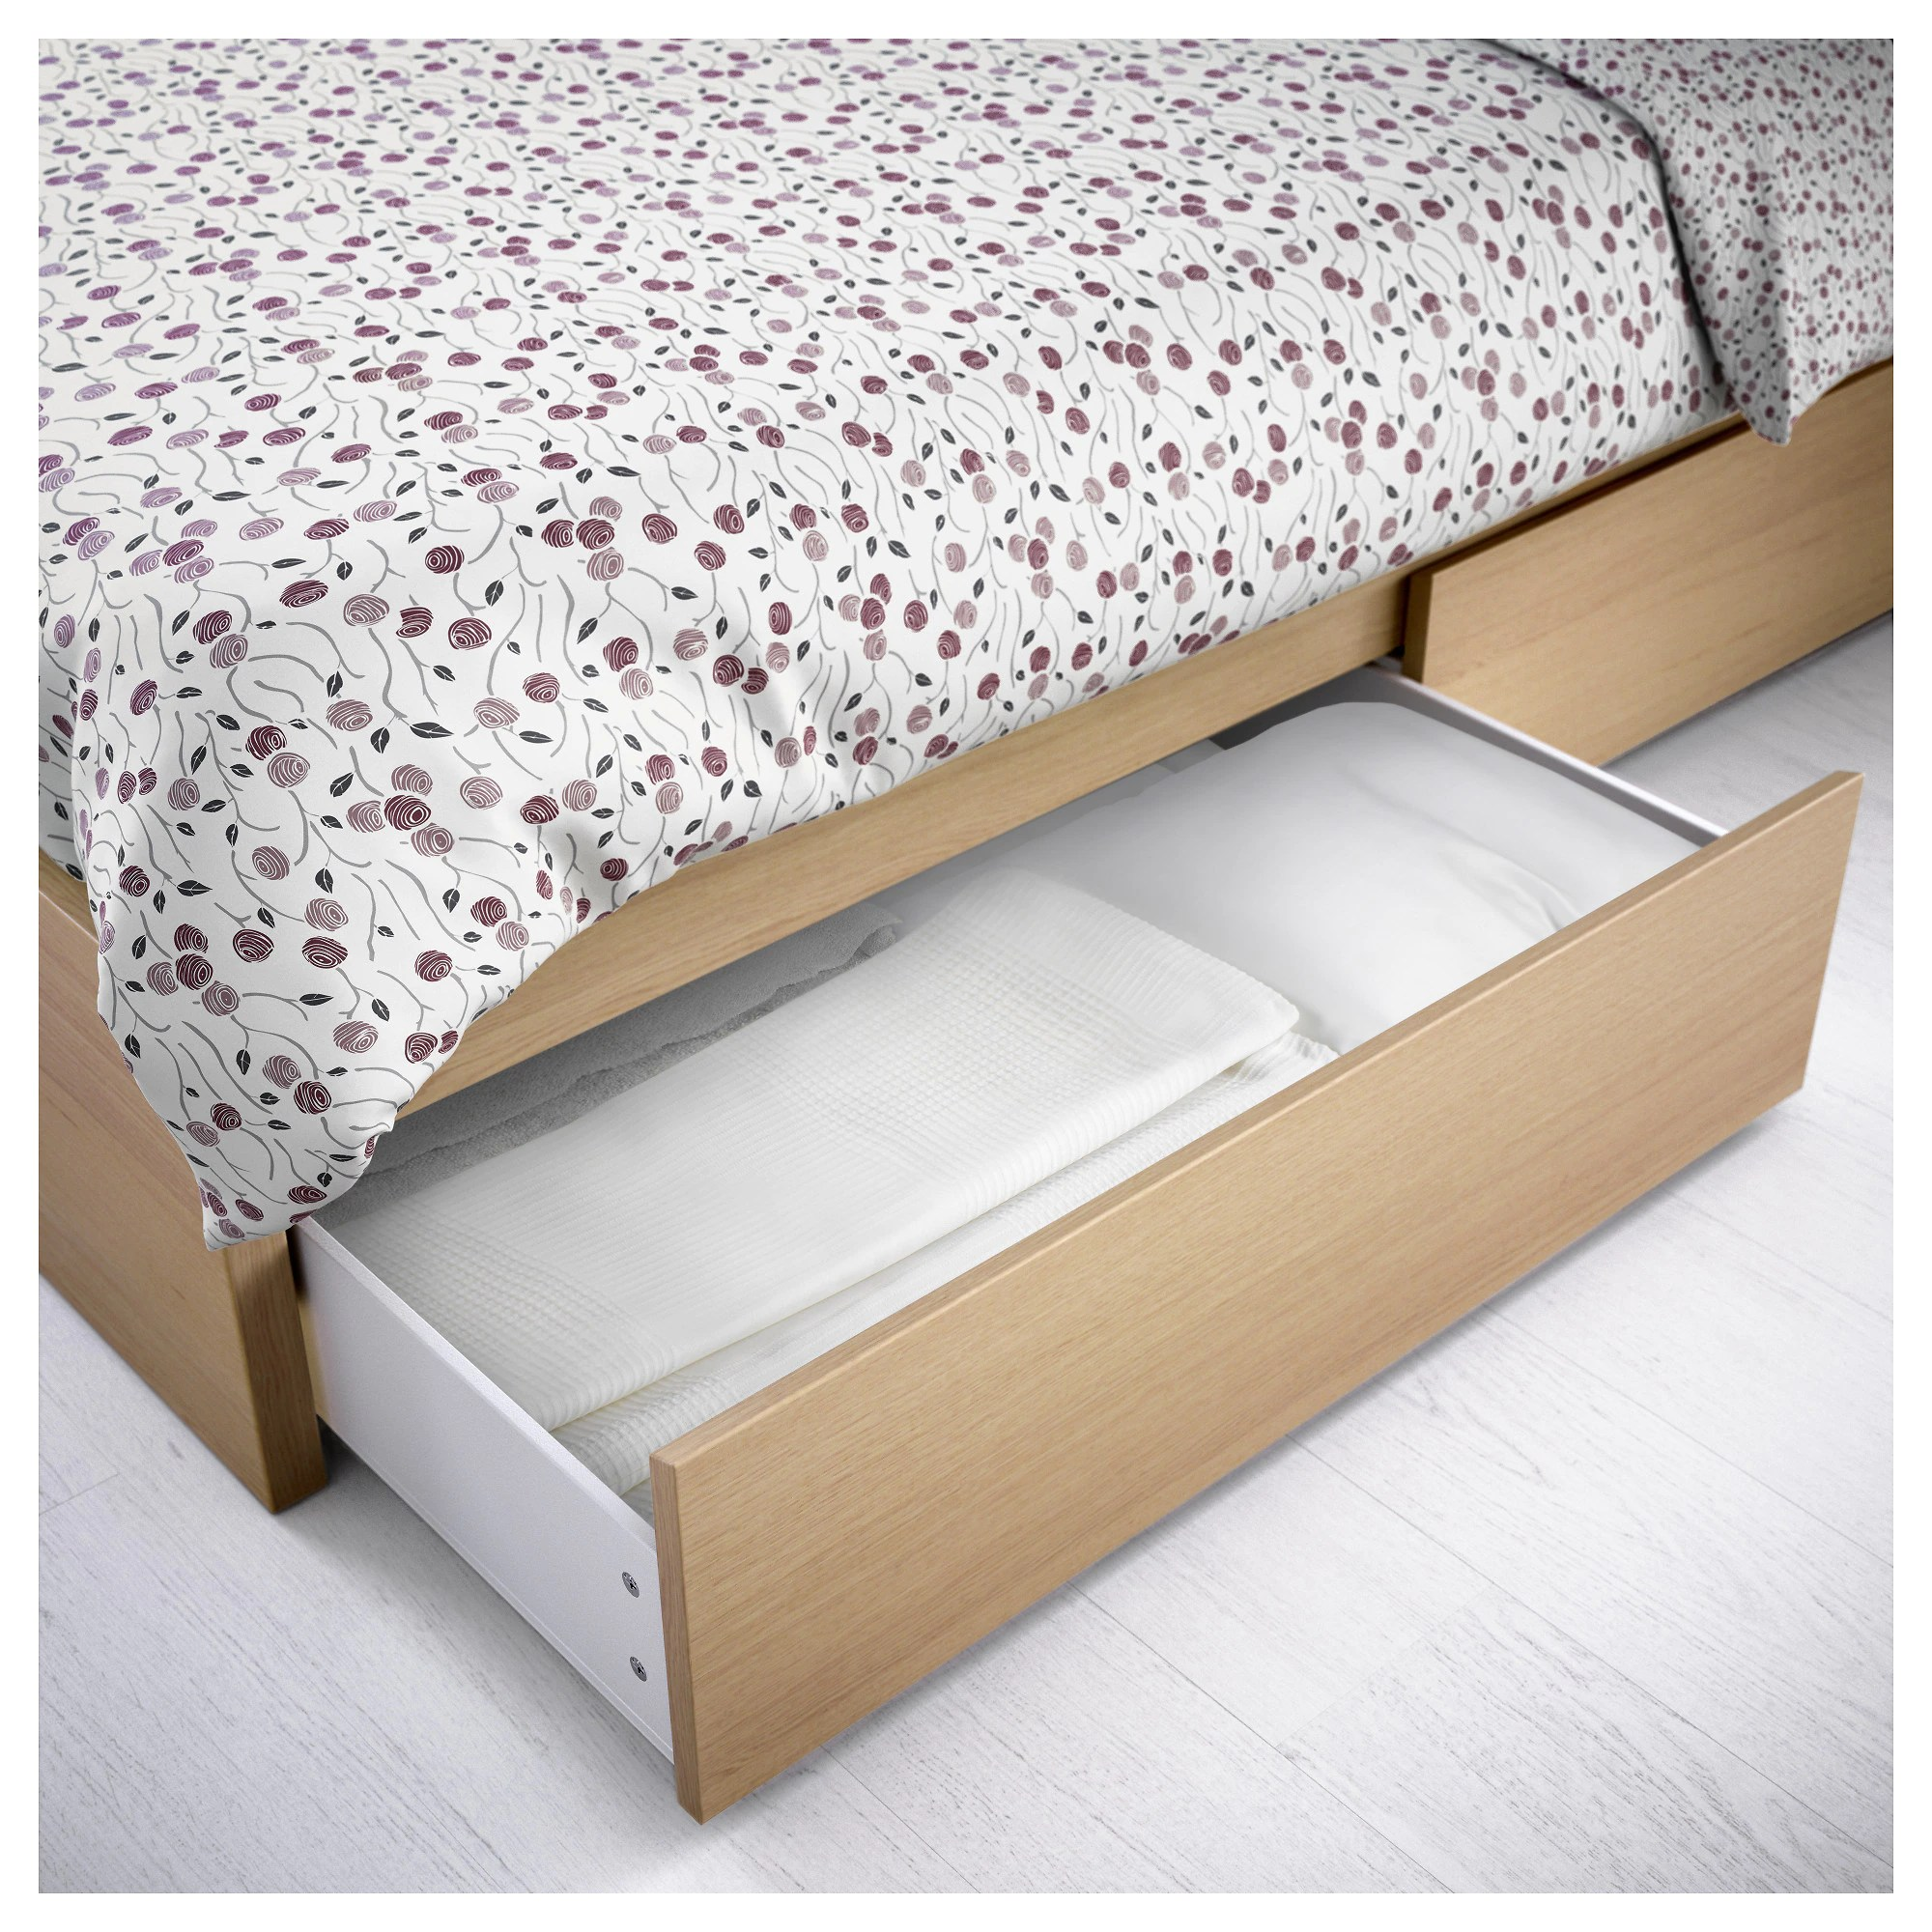 King Single Bed With Drawers Malm Underbed Storage Box For High Bed Black Brown